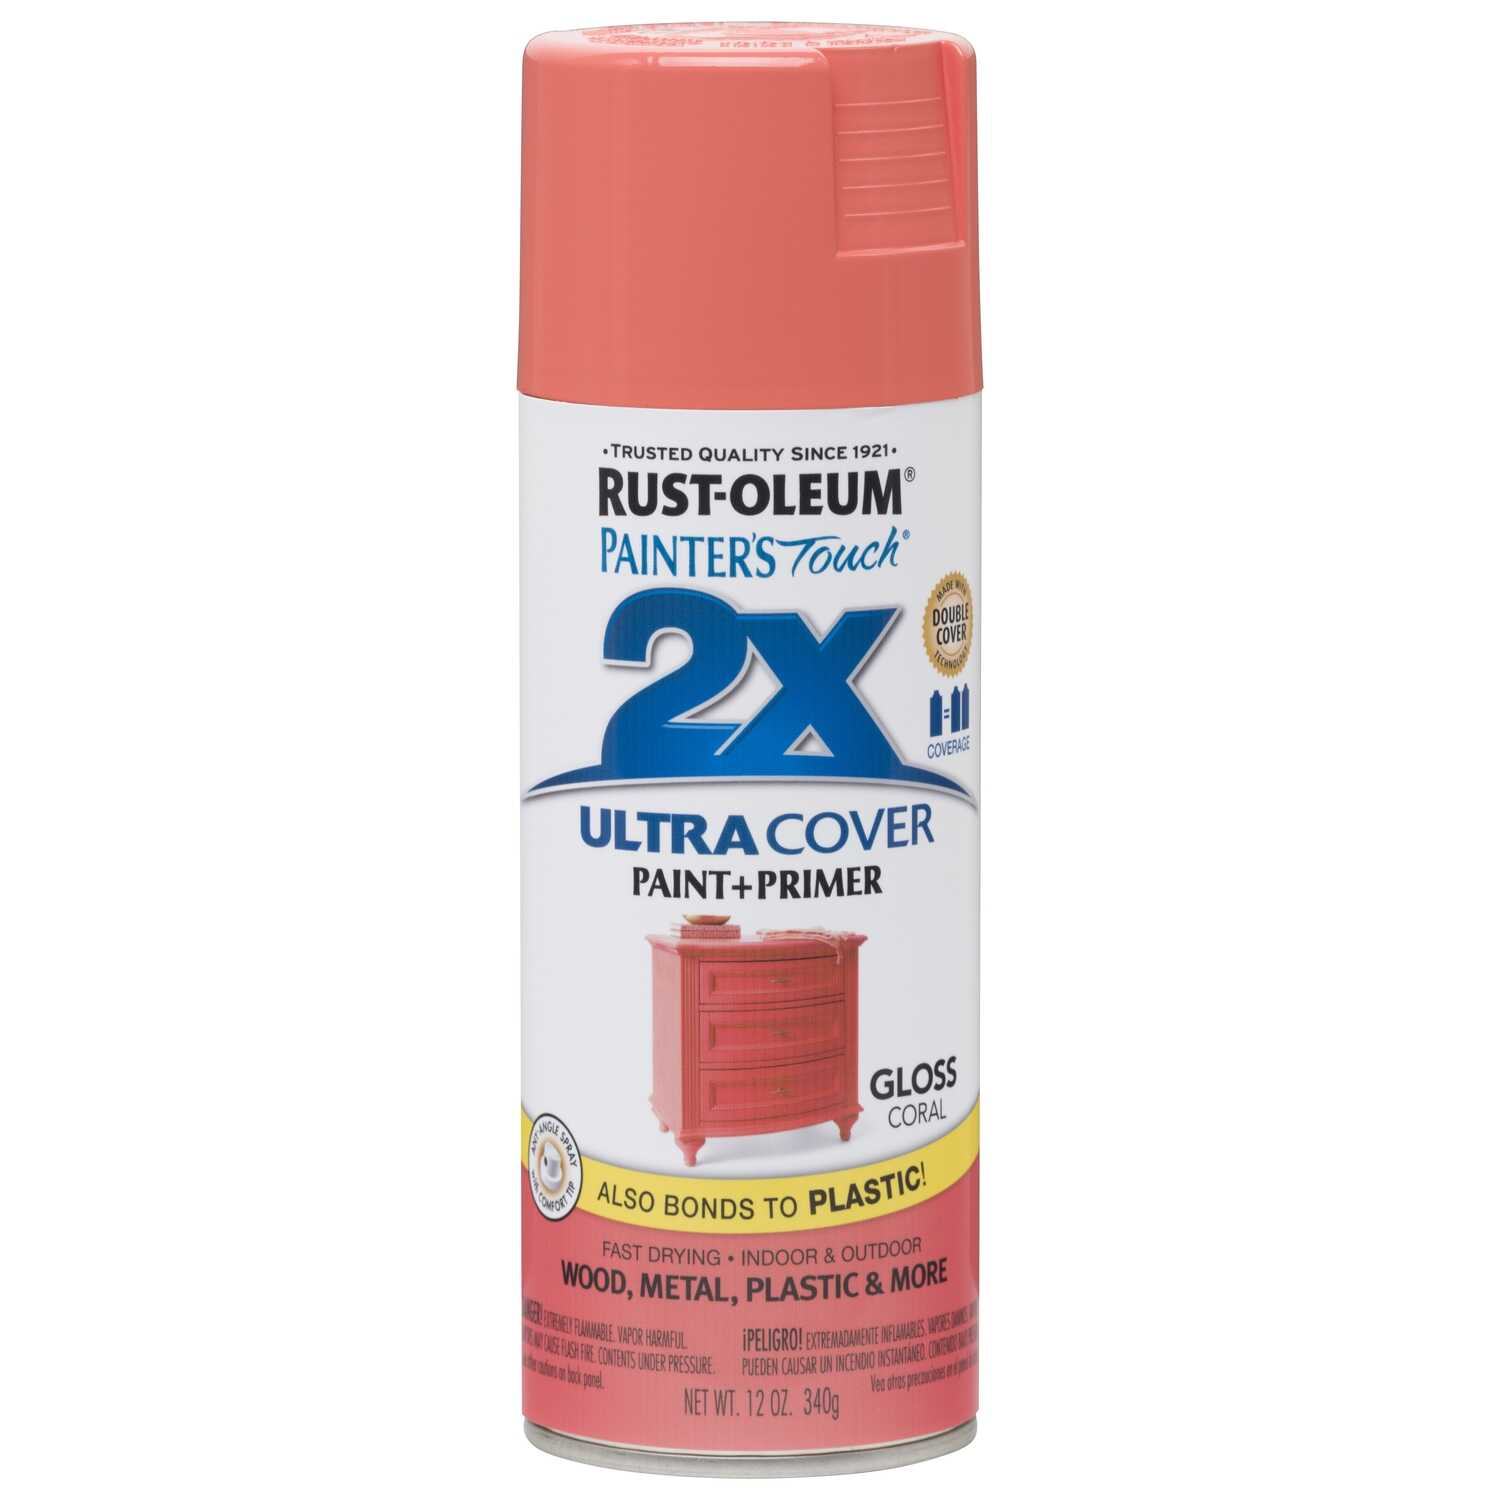 Rust-Oleum  Painter's Touch Ultra Cover  Gloss  Coral  Spray Paint  12 oz.